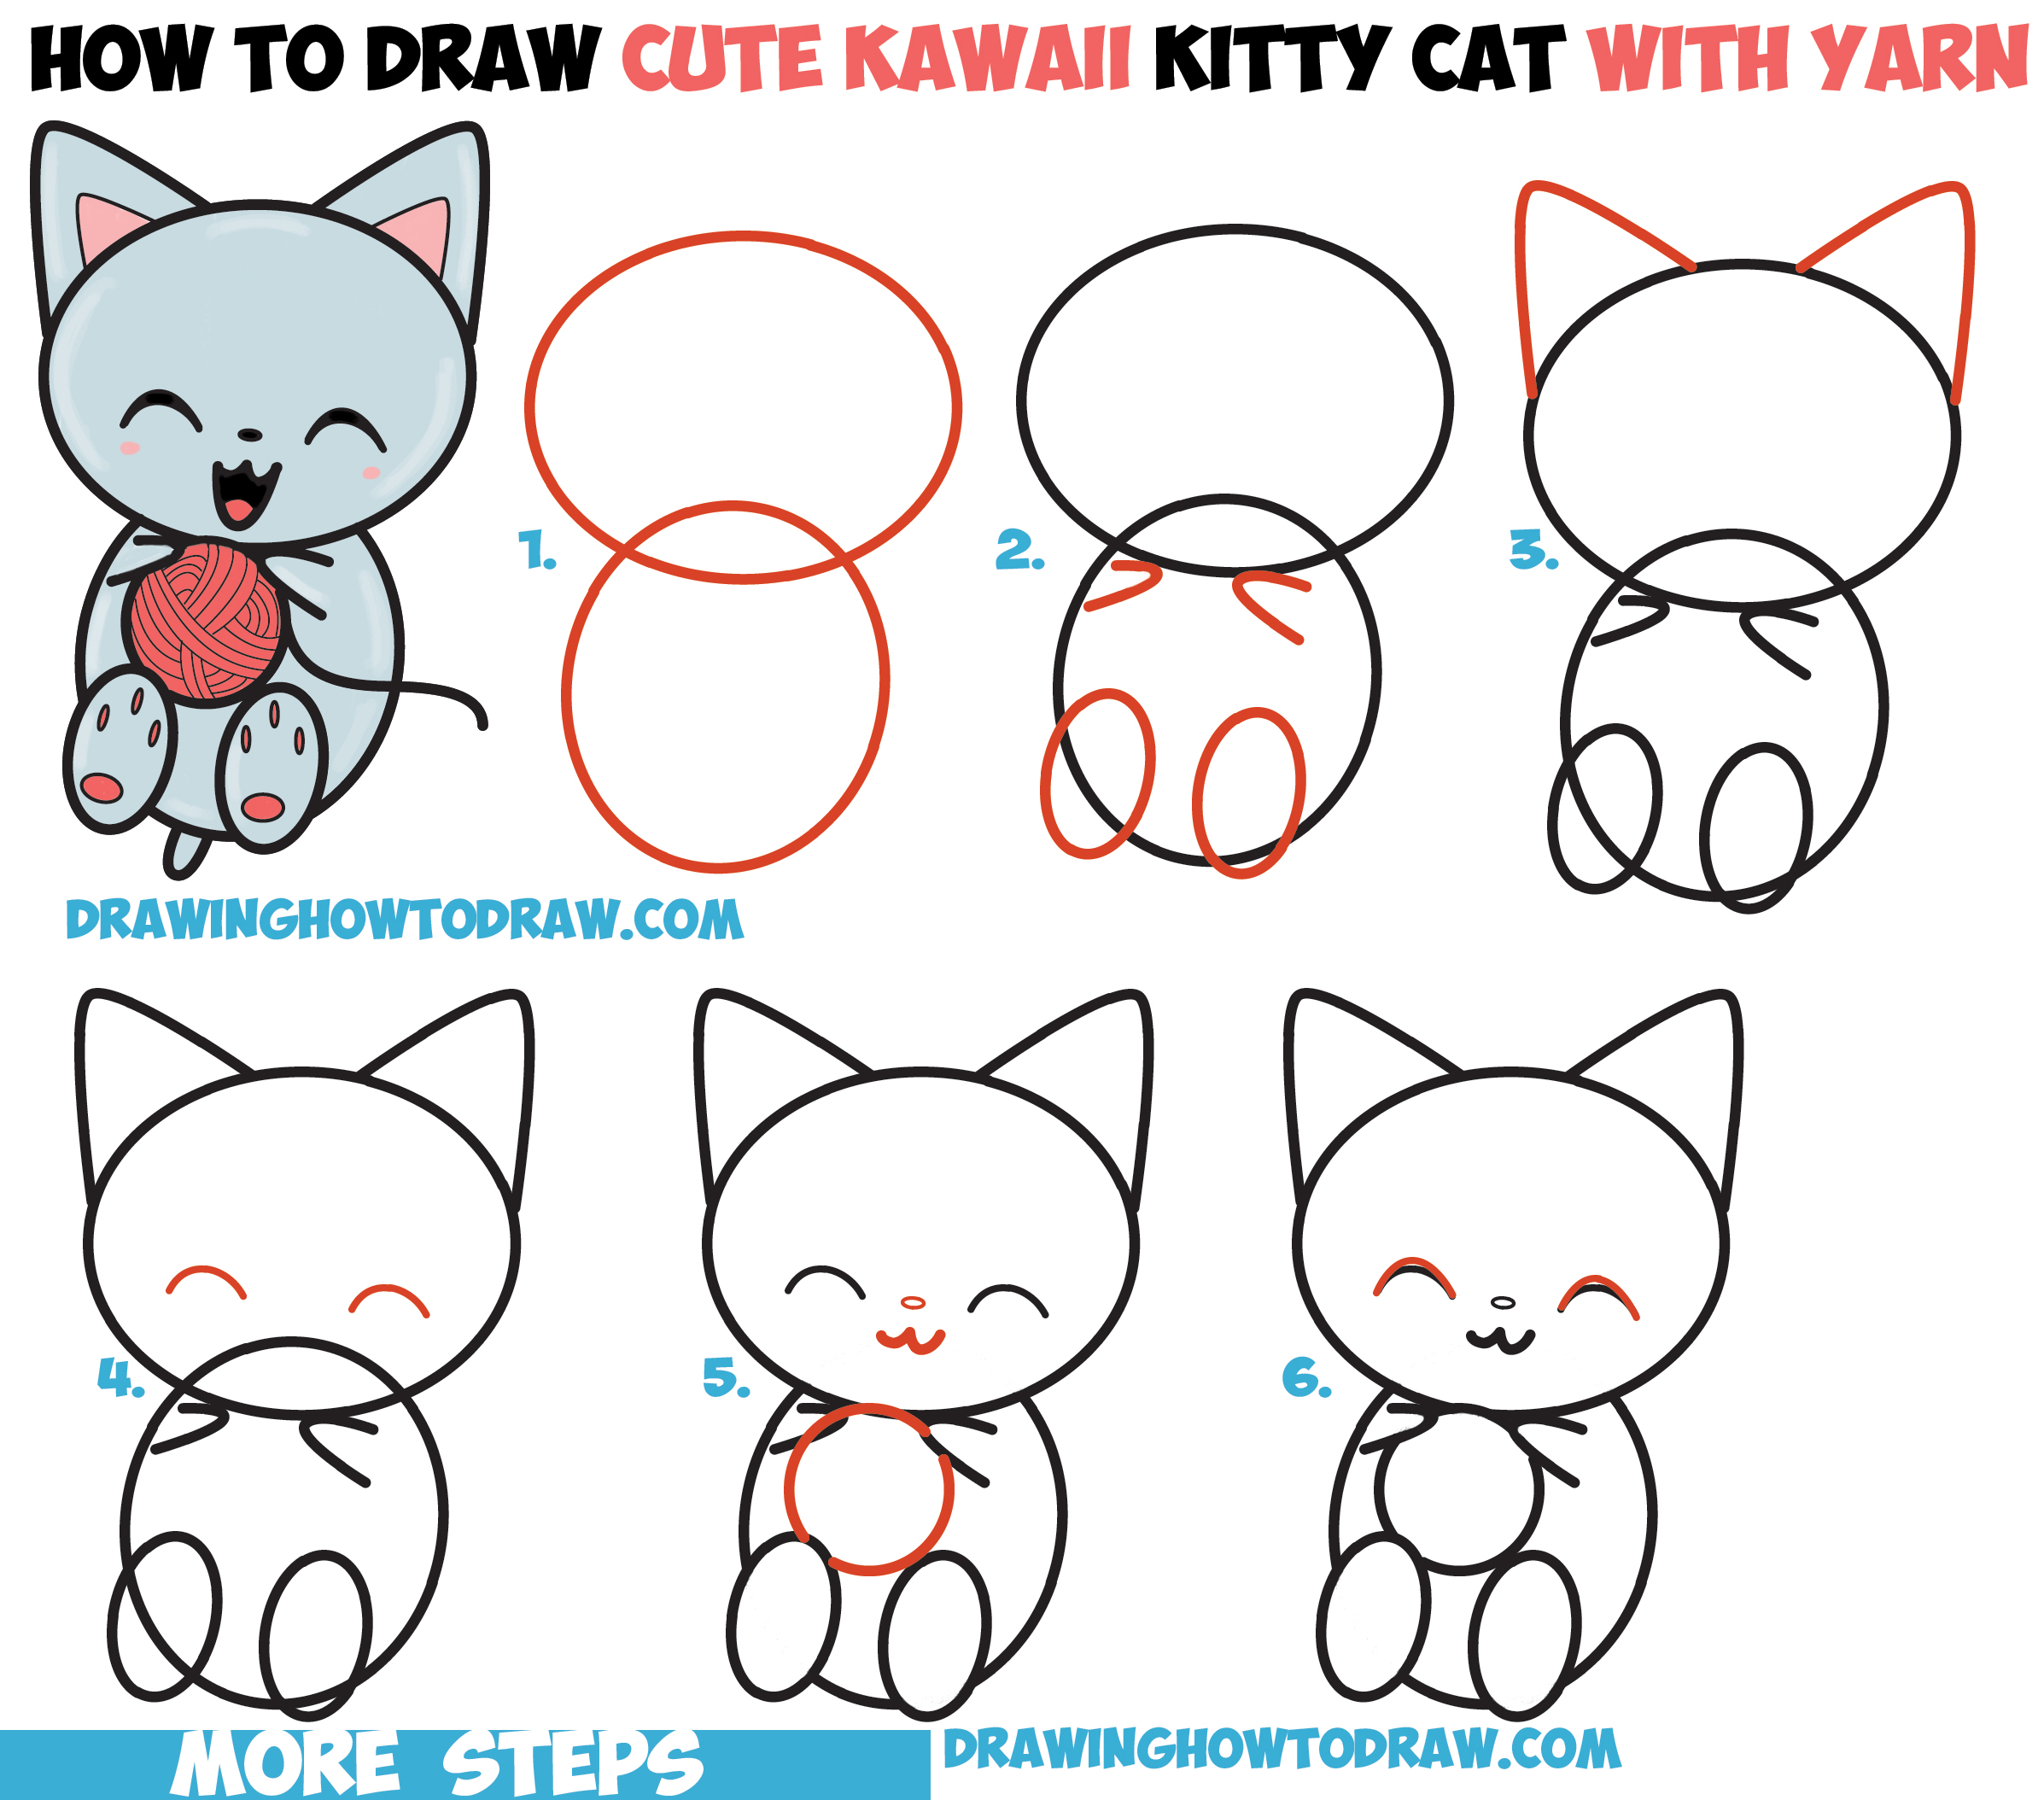 How to draw cute kawaii kitten cat playing with yarn for Simple drawings step by step